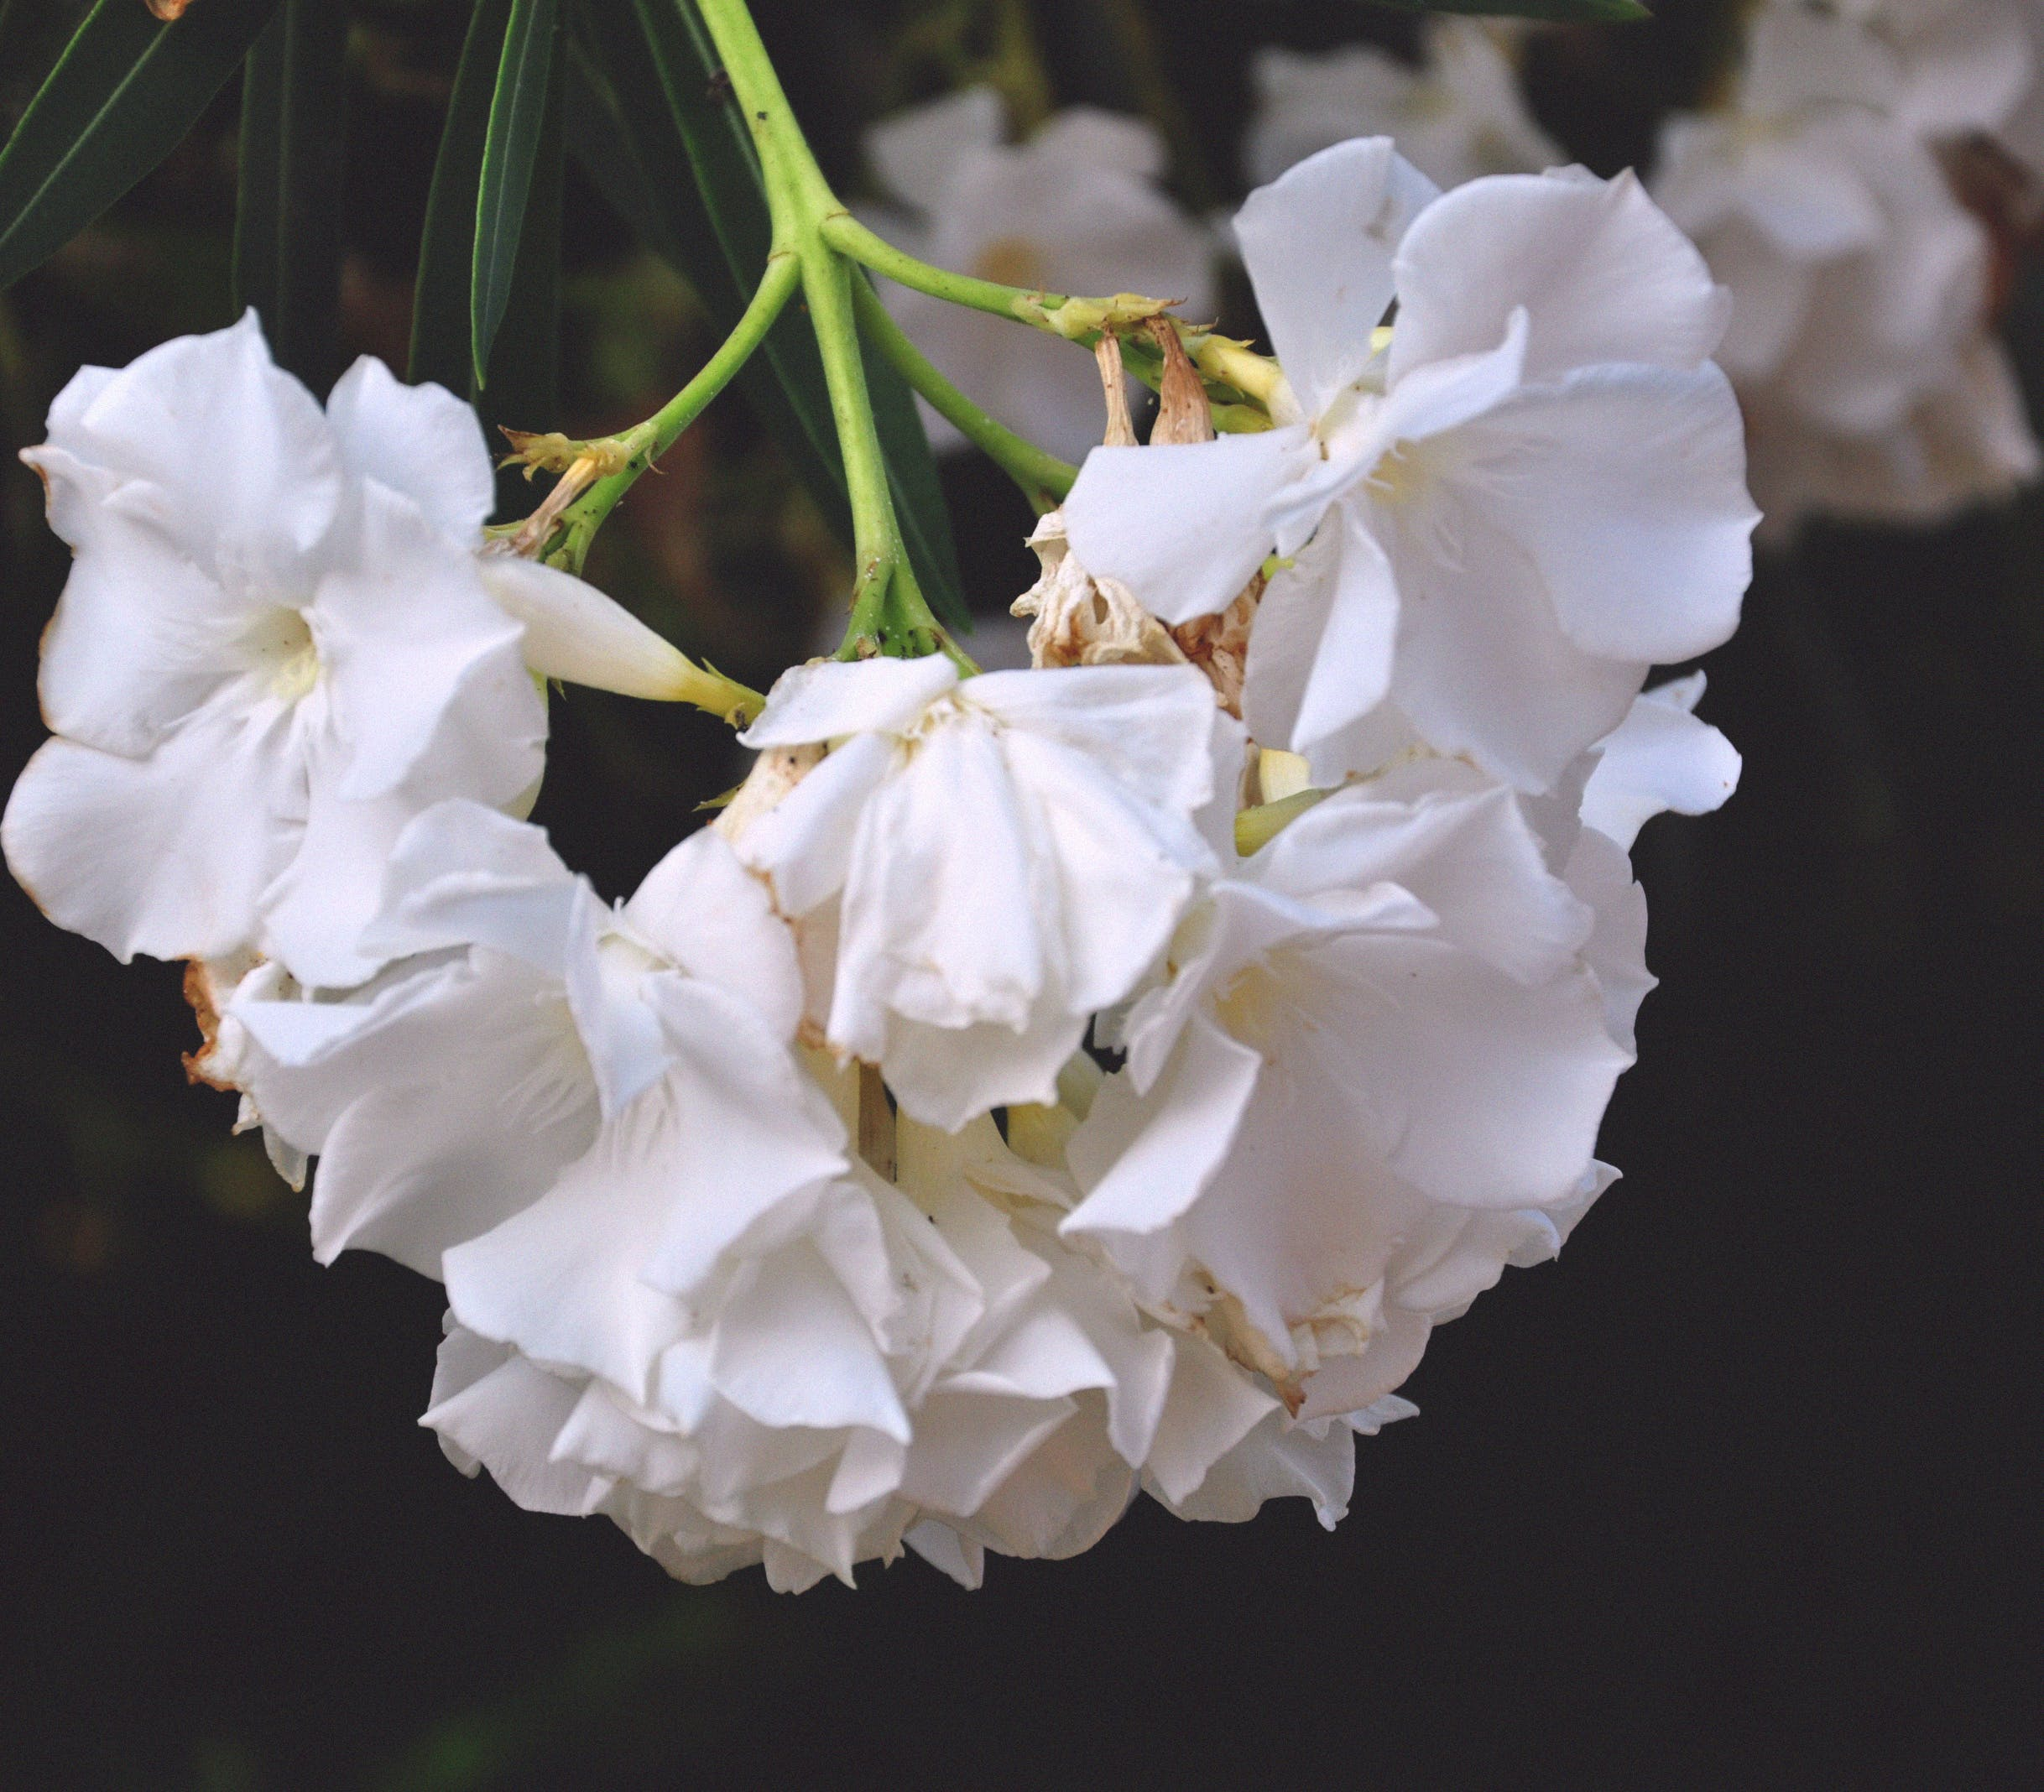 Free stock photo of branch, bunches of flowers, nature, pure